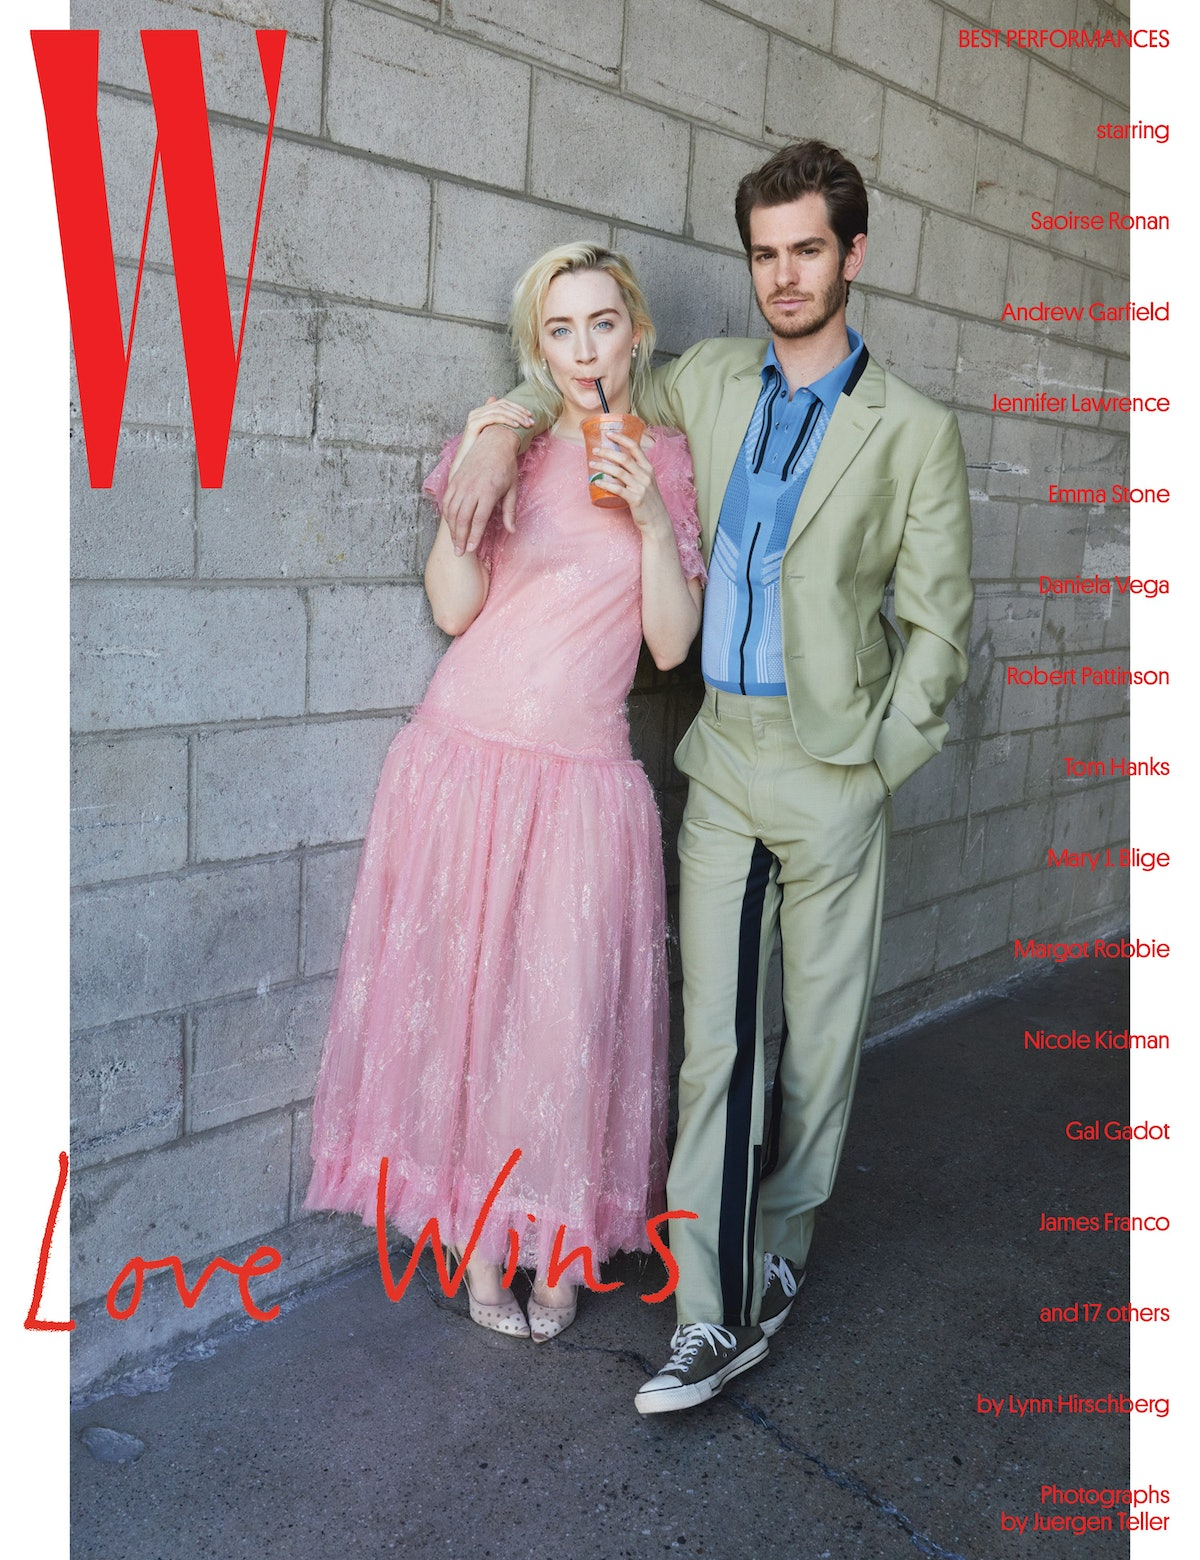 Saoirse Ronan and Andrew Garfield - Best Performances Covers